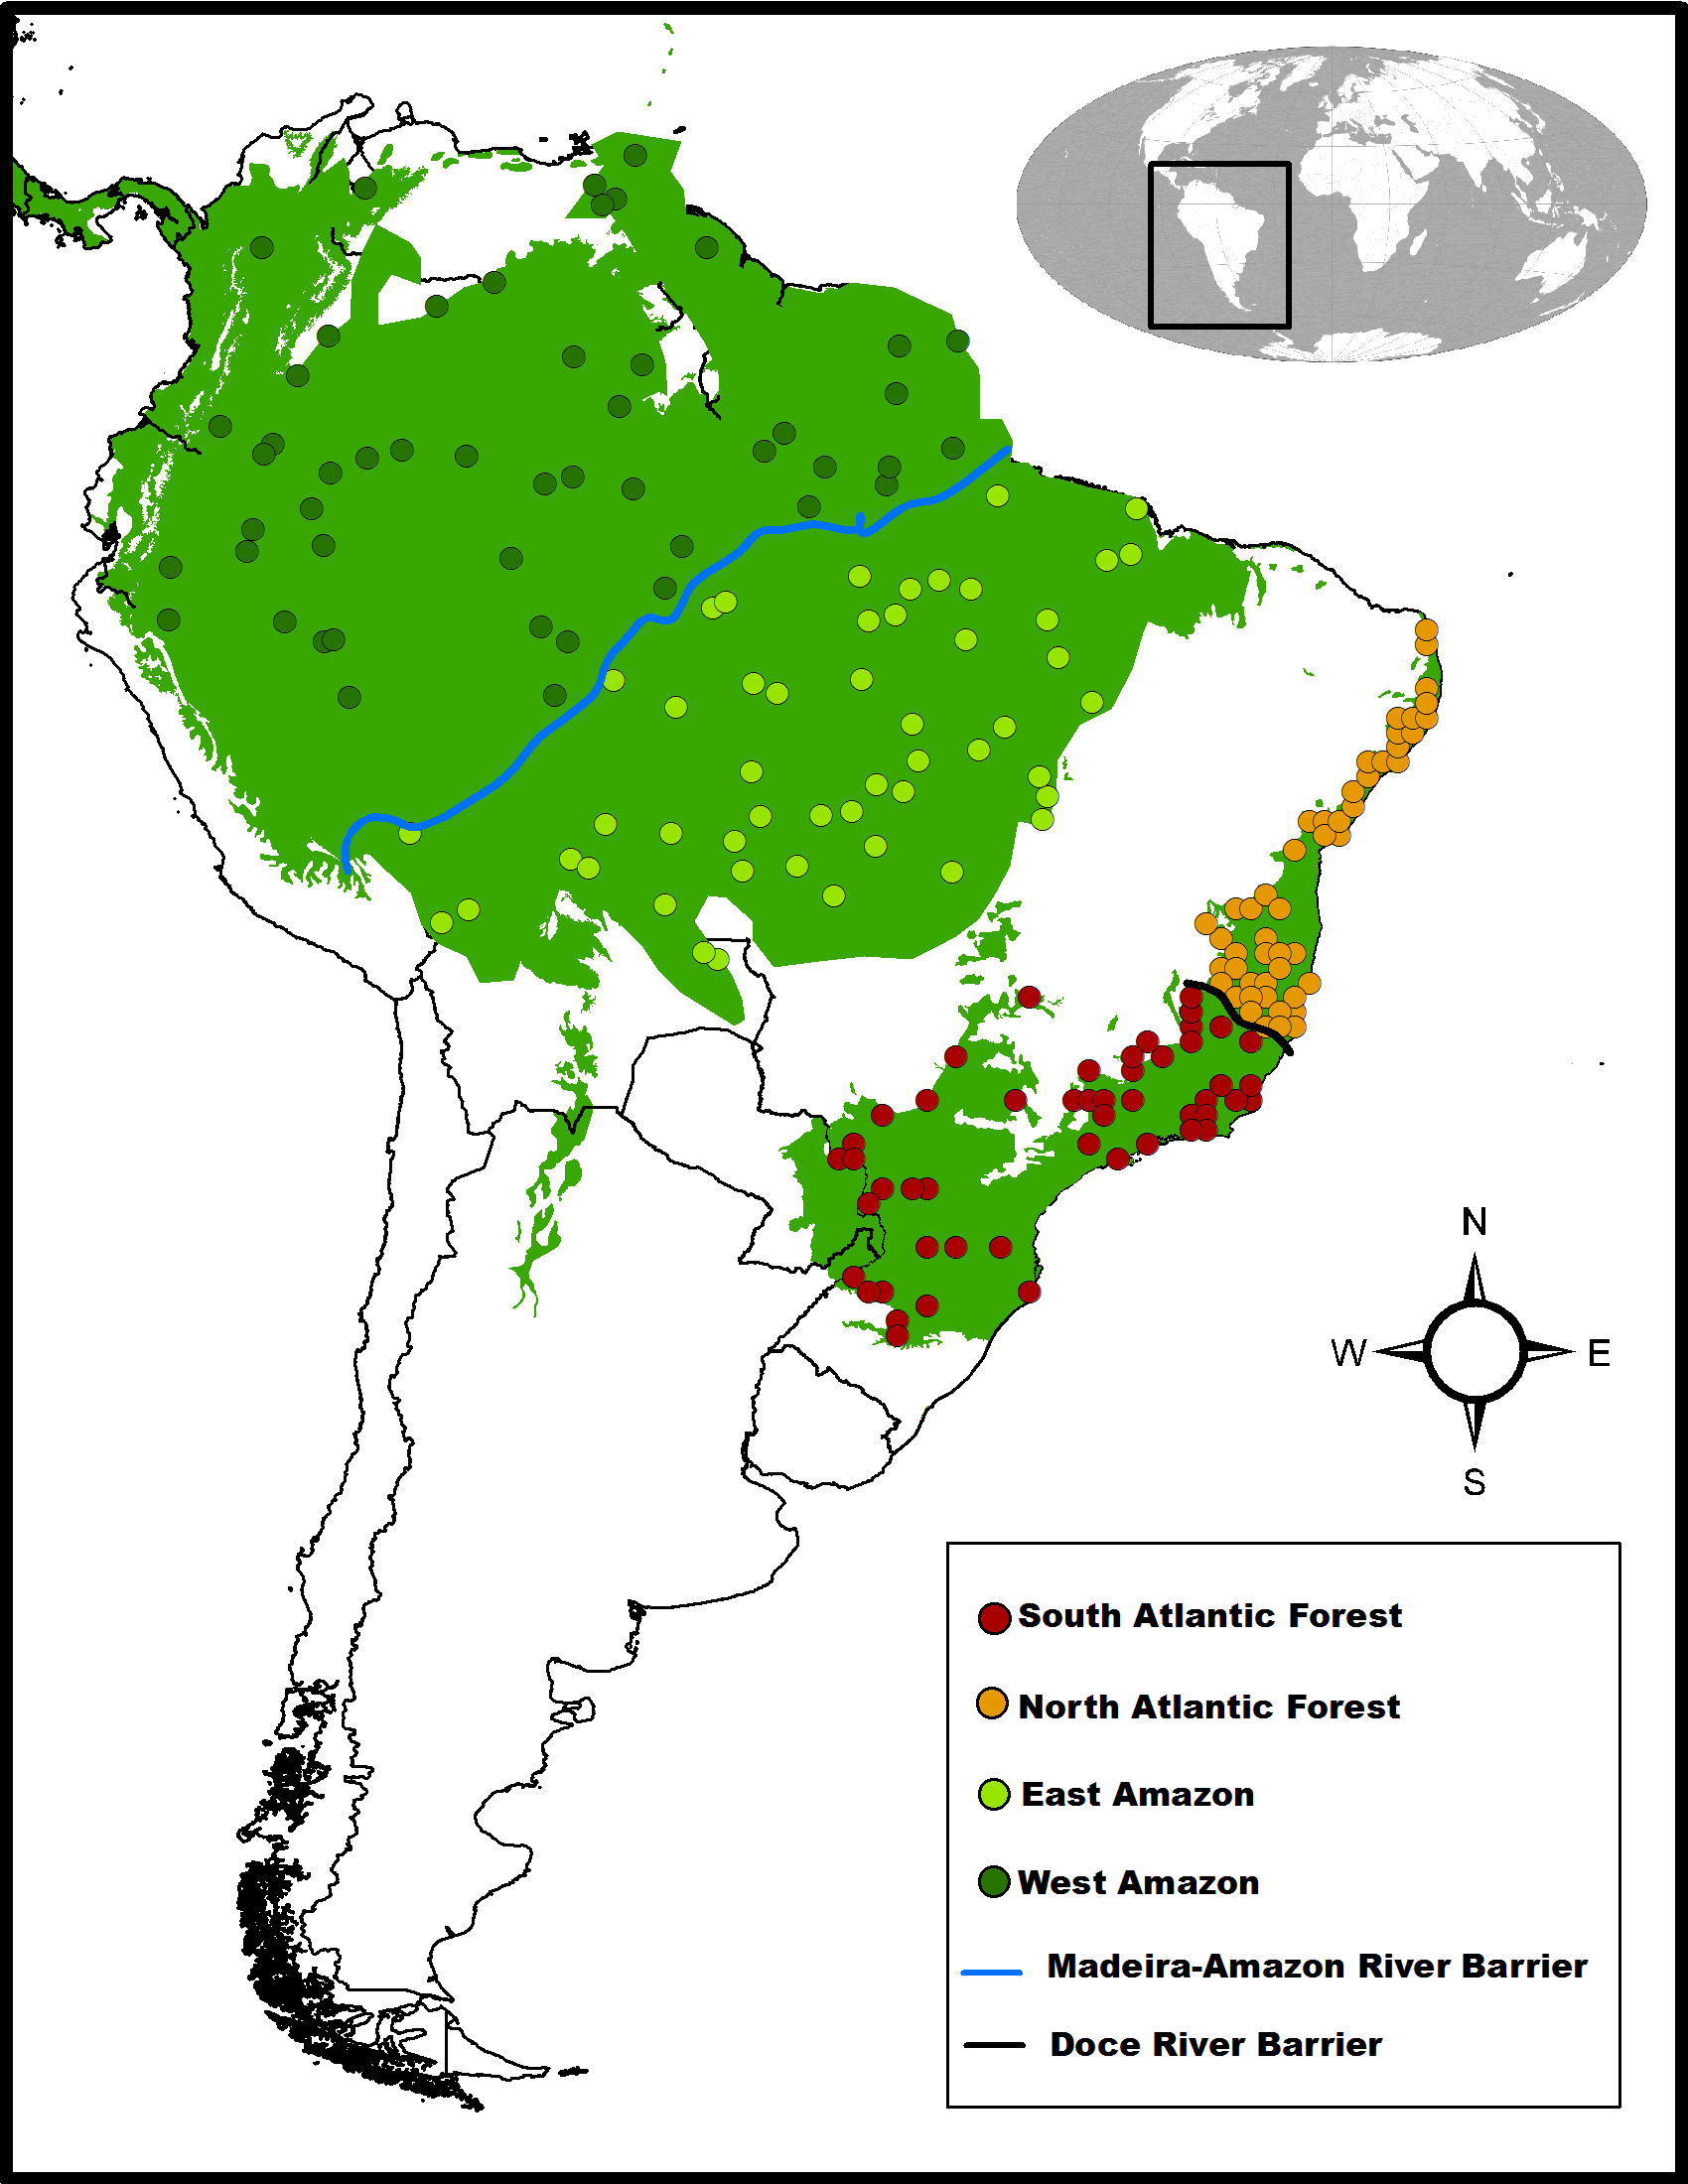 Biogeography of Neotropical Rainforests past connections between